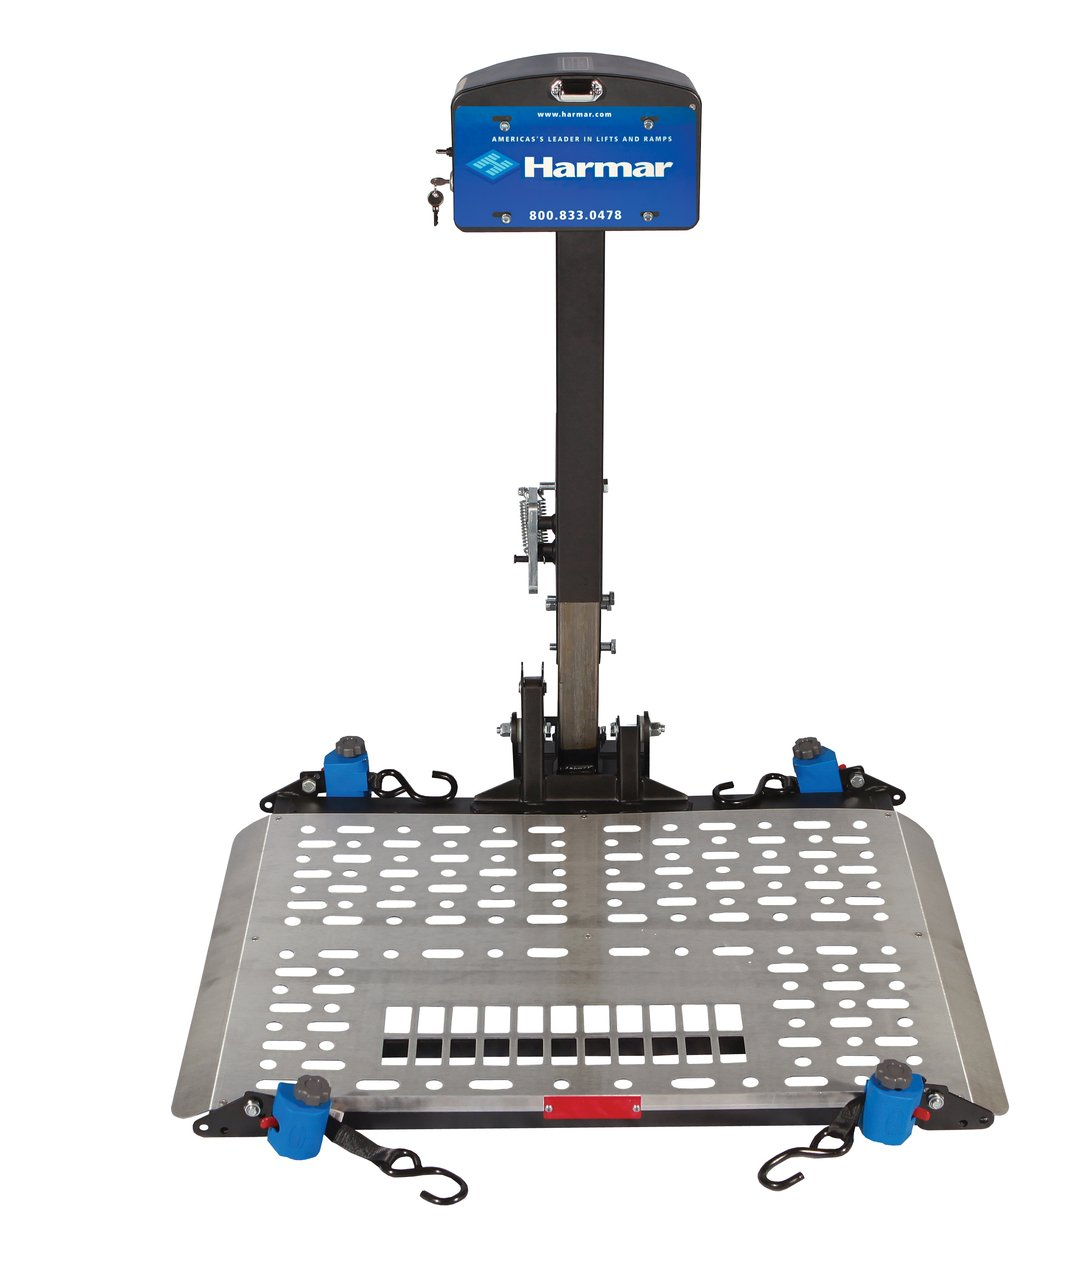 Harmar Mobility AL500 Universal Powerchair Lift Outside Auto Carrier + AL105 Swing Away Joint